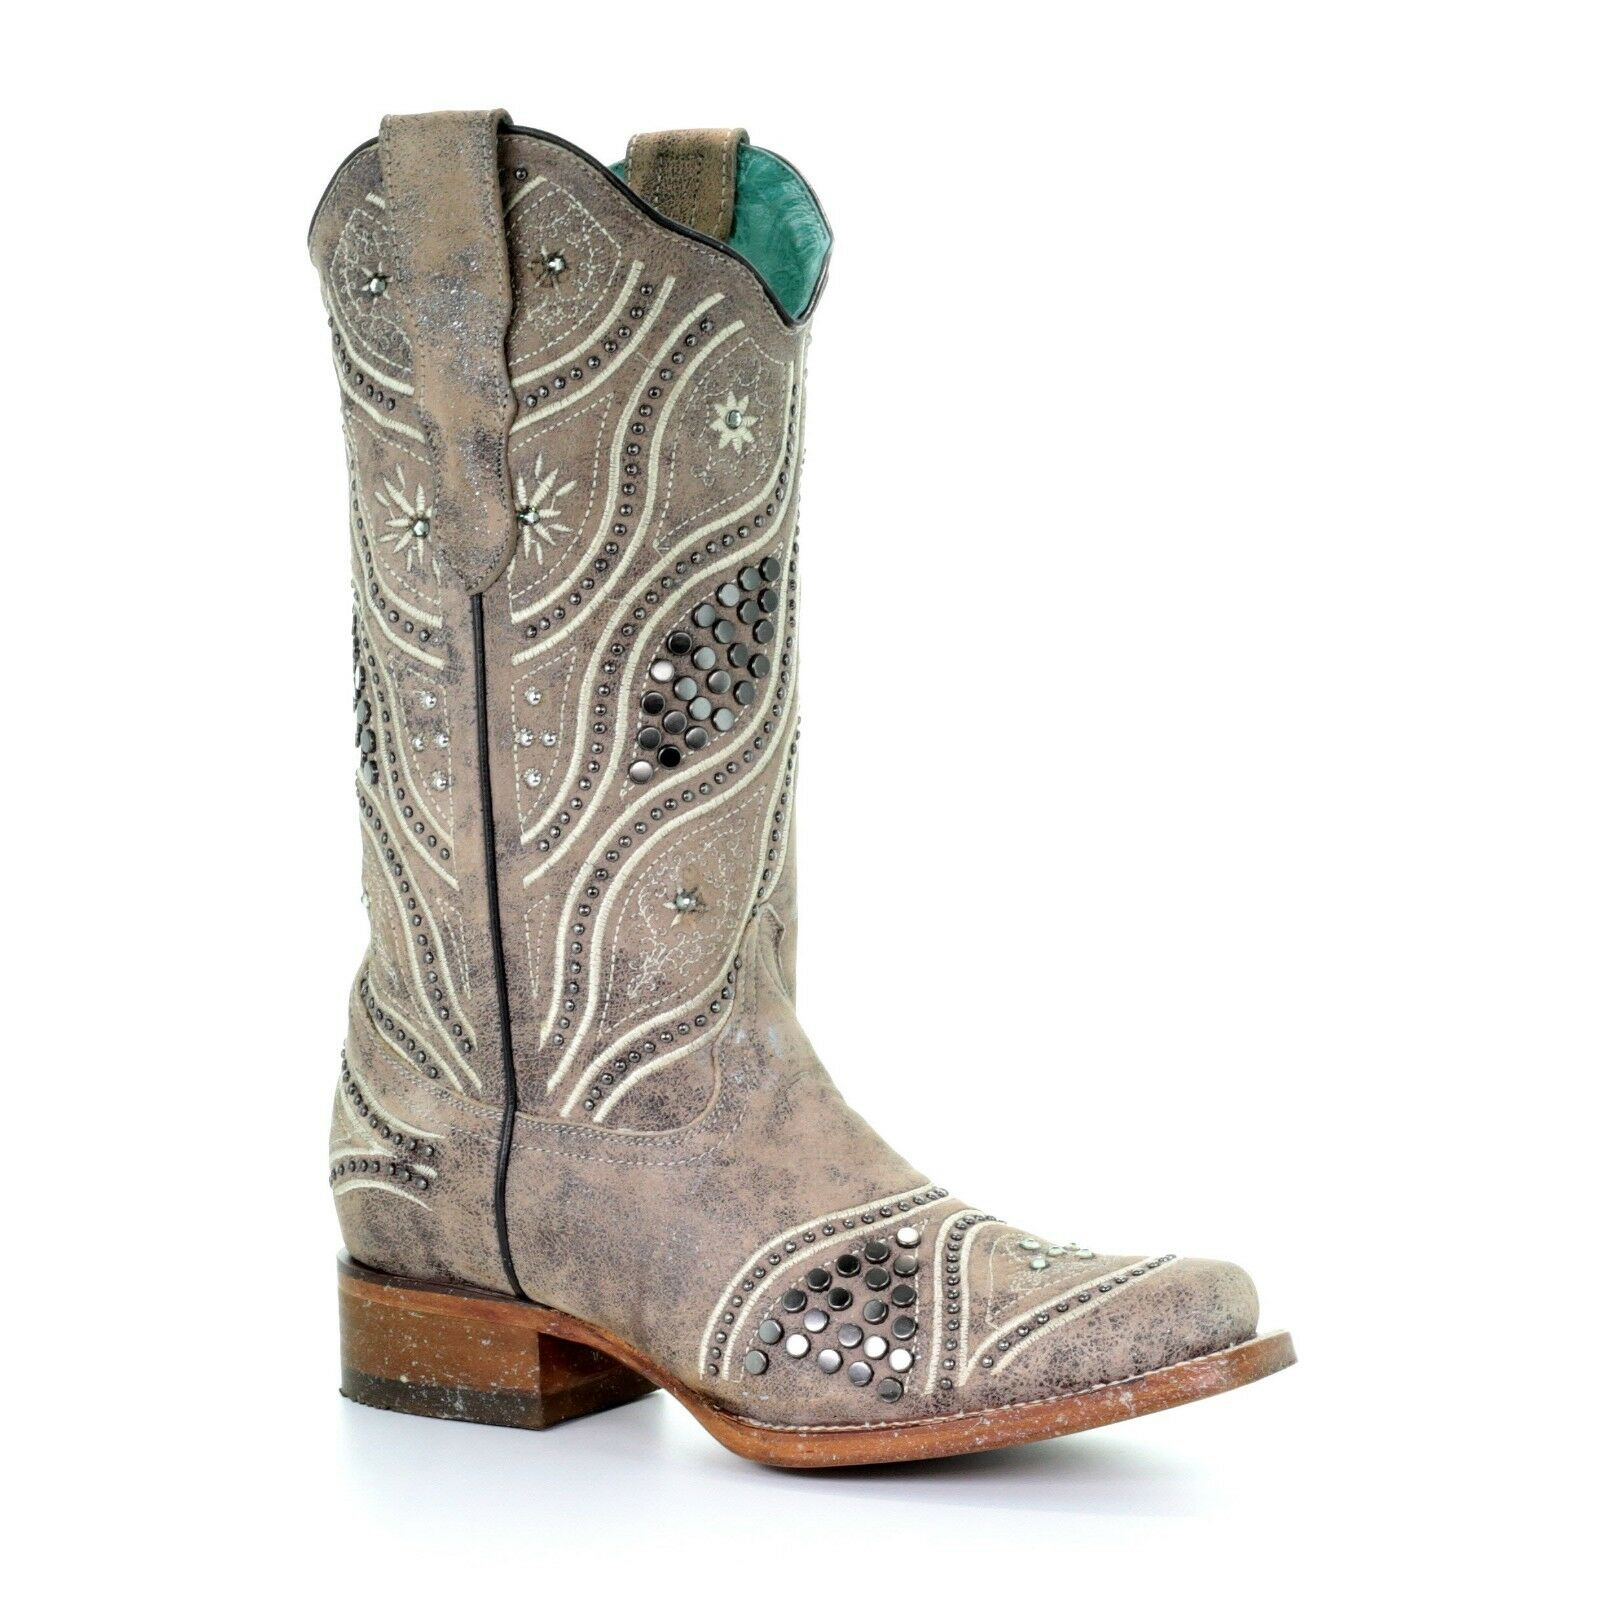 Corral Ladies Taupe Stud and Embroidery Boot E1389